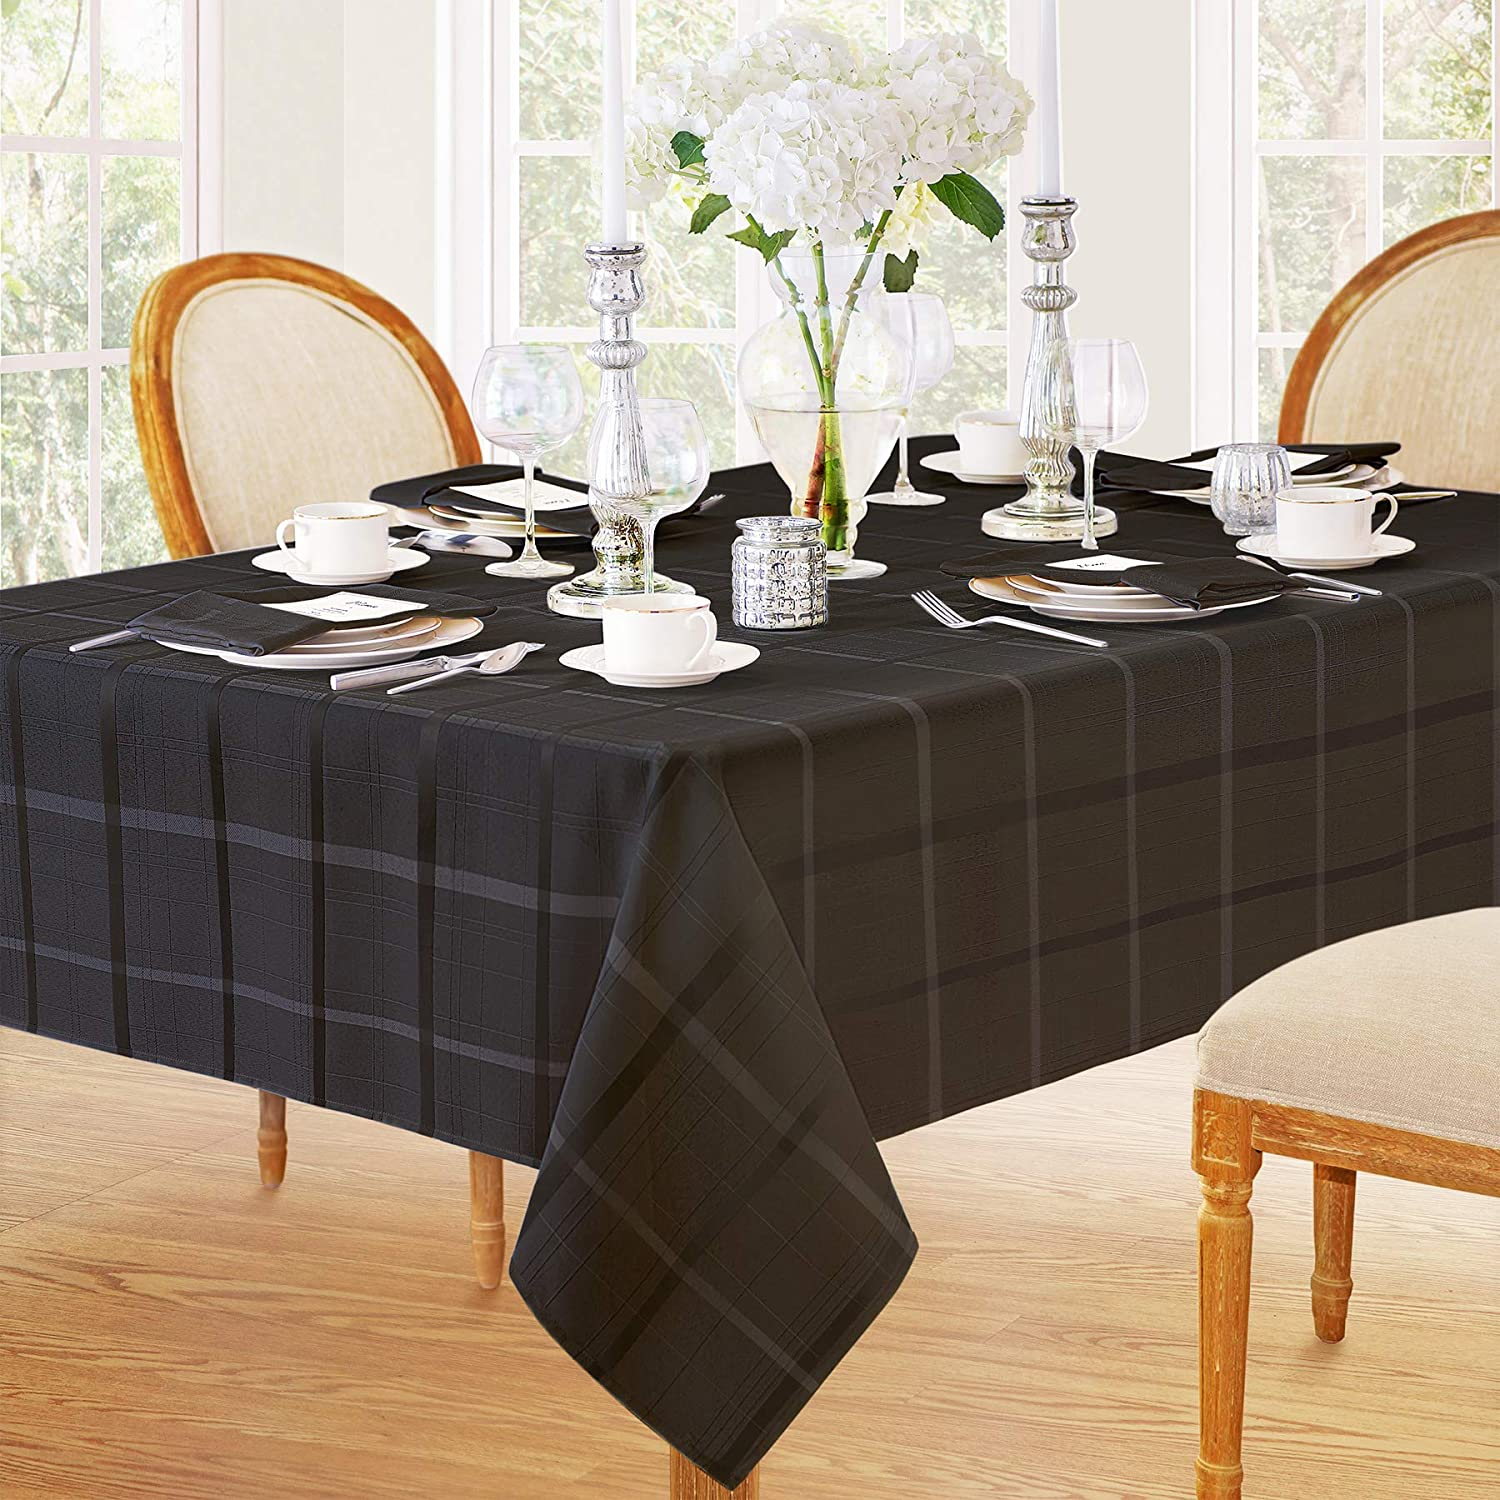 Elegance Plaid Contemporary Woven Solid Decorative Tablecloth by Newbridge, Polyester, No Iron, Soil Resistant Holiday Tablecloth,60 X 84 Oblong, Black